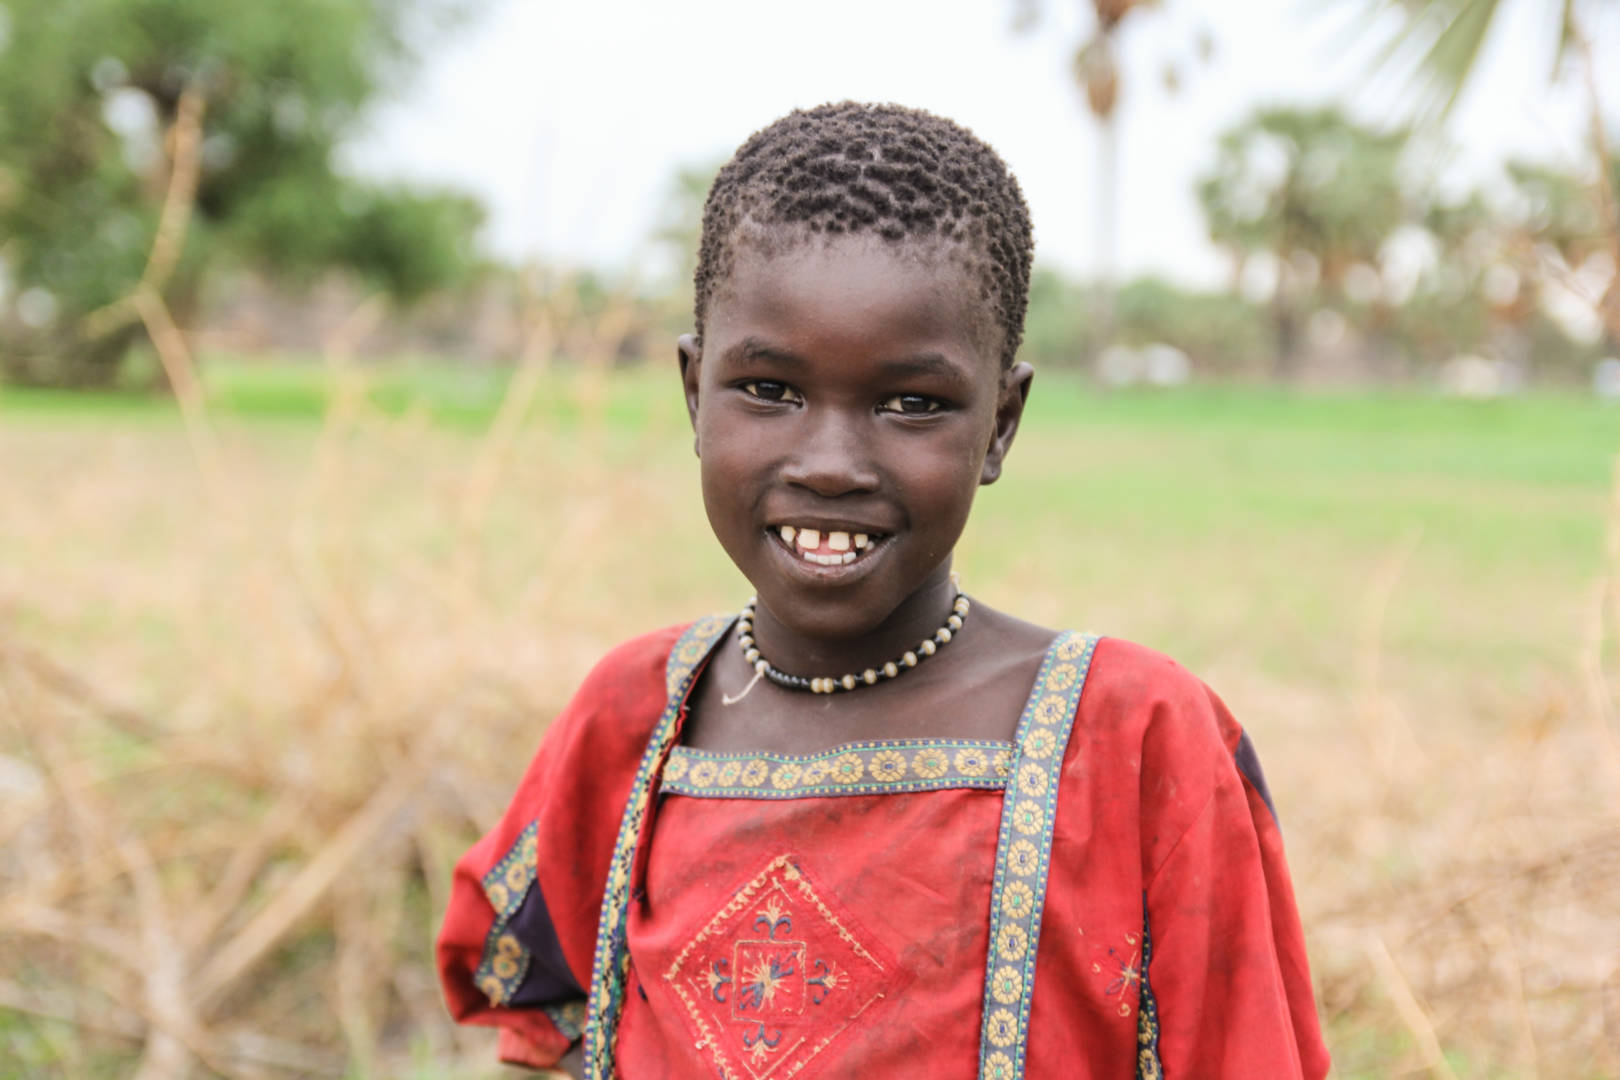 Pray for South Sudan: Join us in praying over the people of South Sudan, where armed conflict and food shortages make it very difficult to live right now.